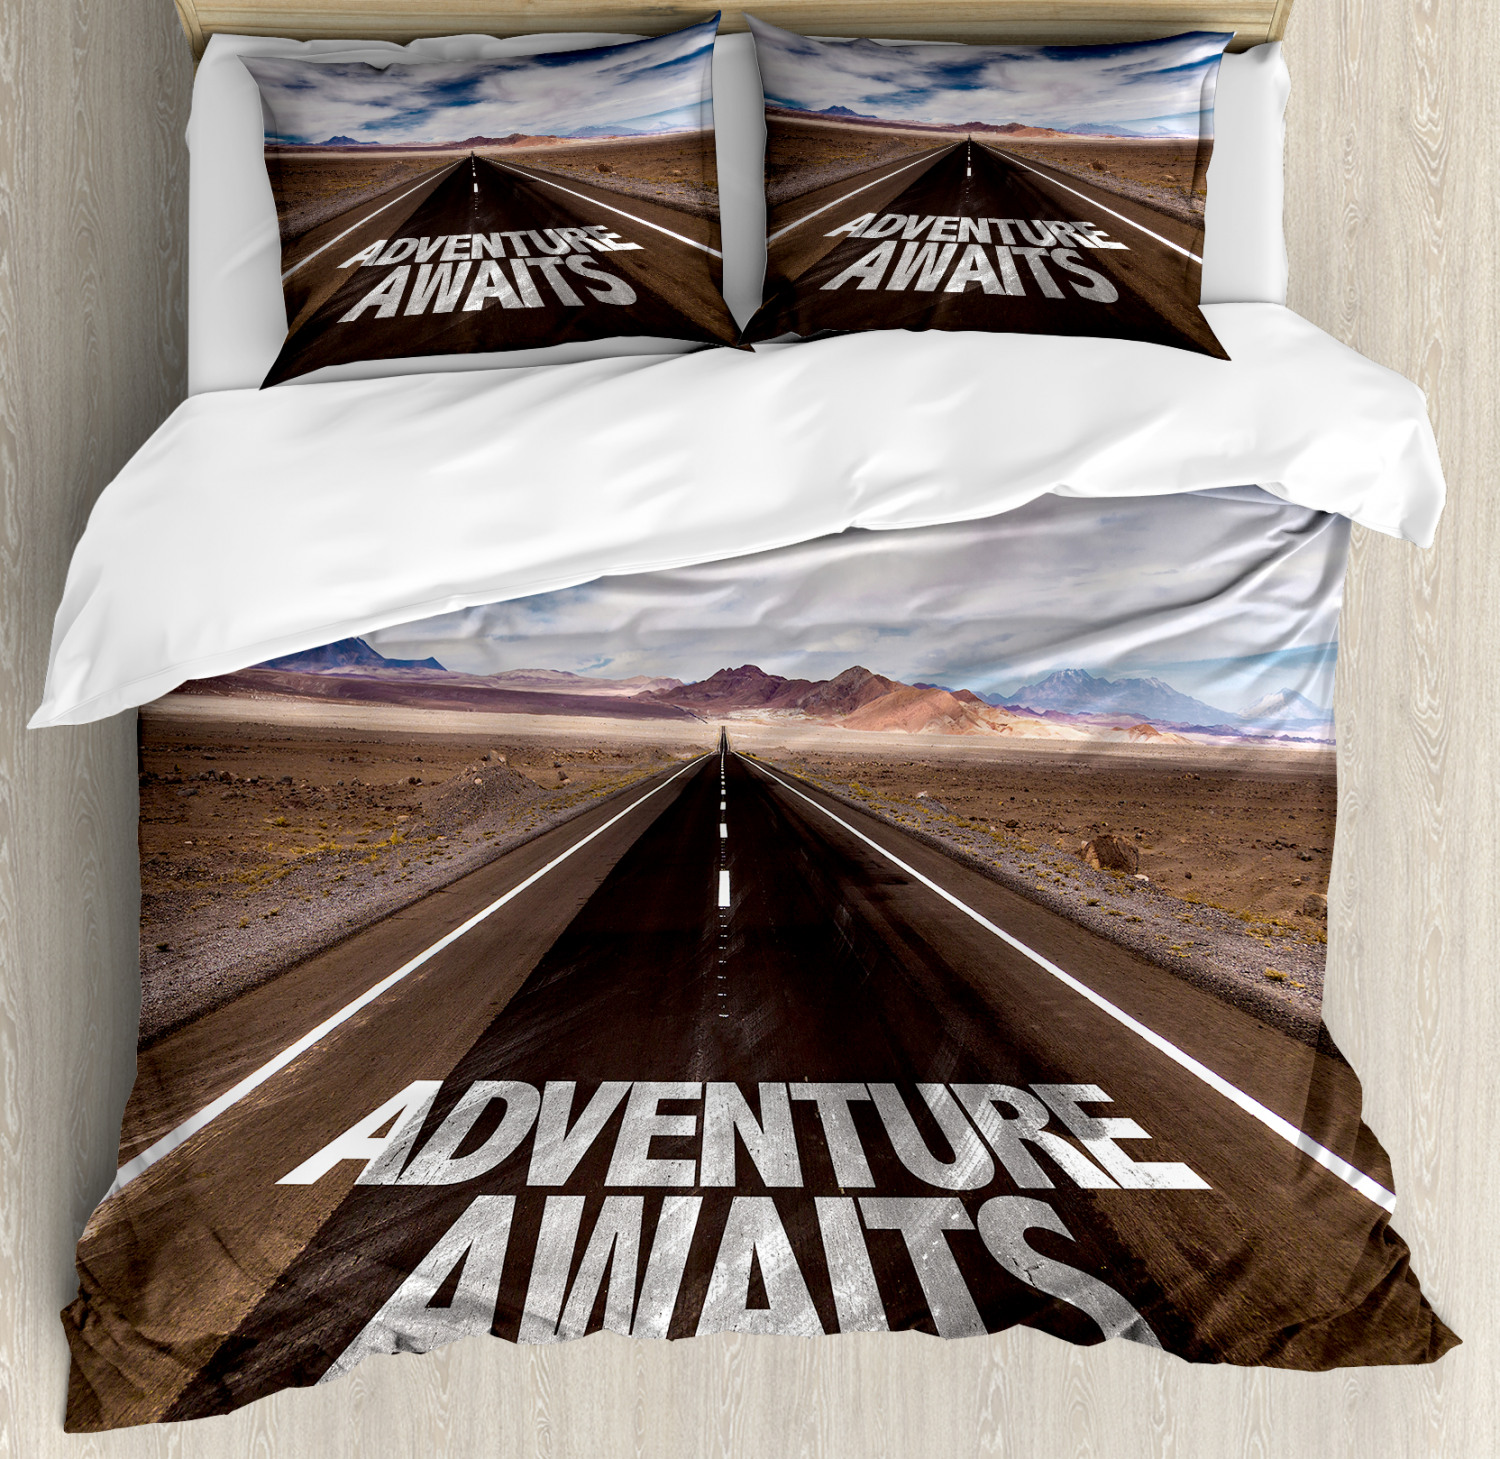 Adventure Duvet Cover Set with Pillow Shams Road Trip Quote Art Print